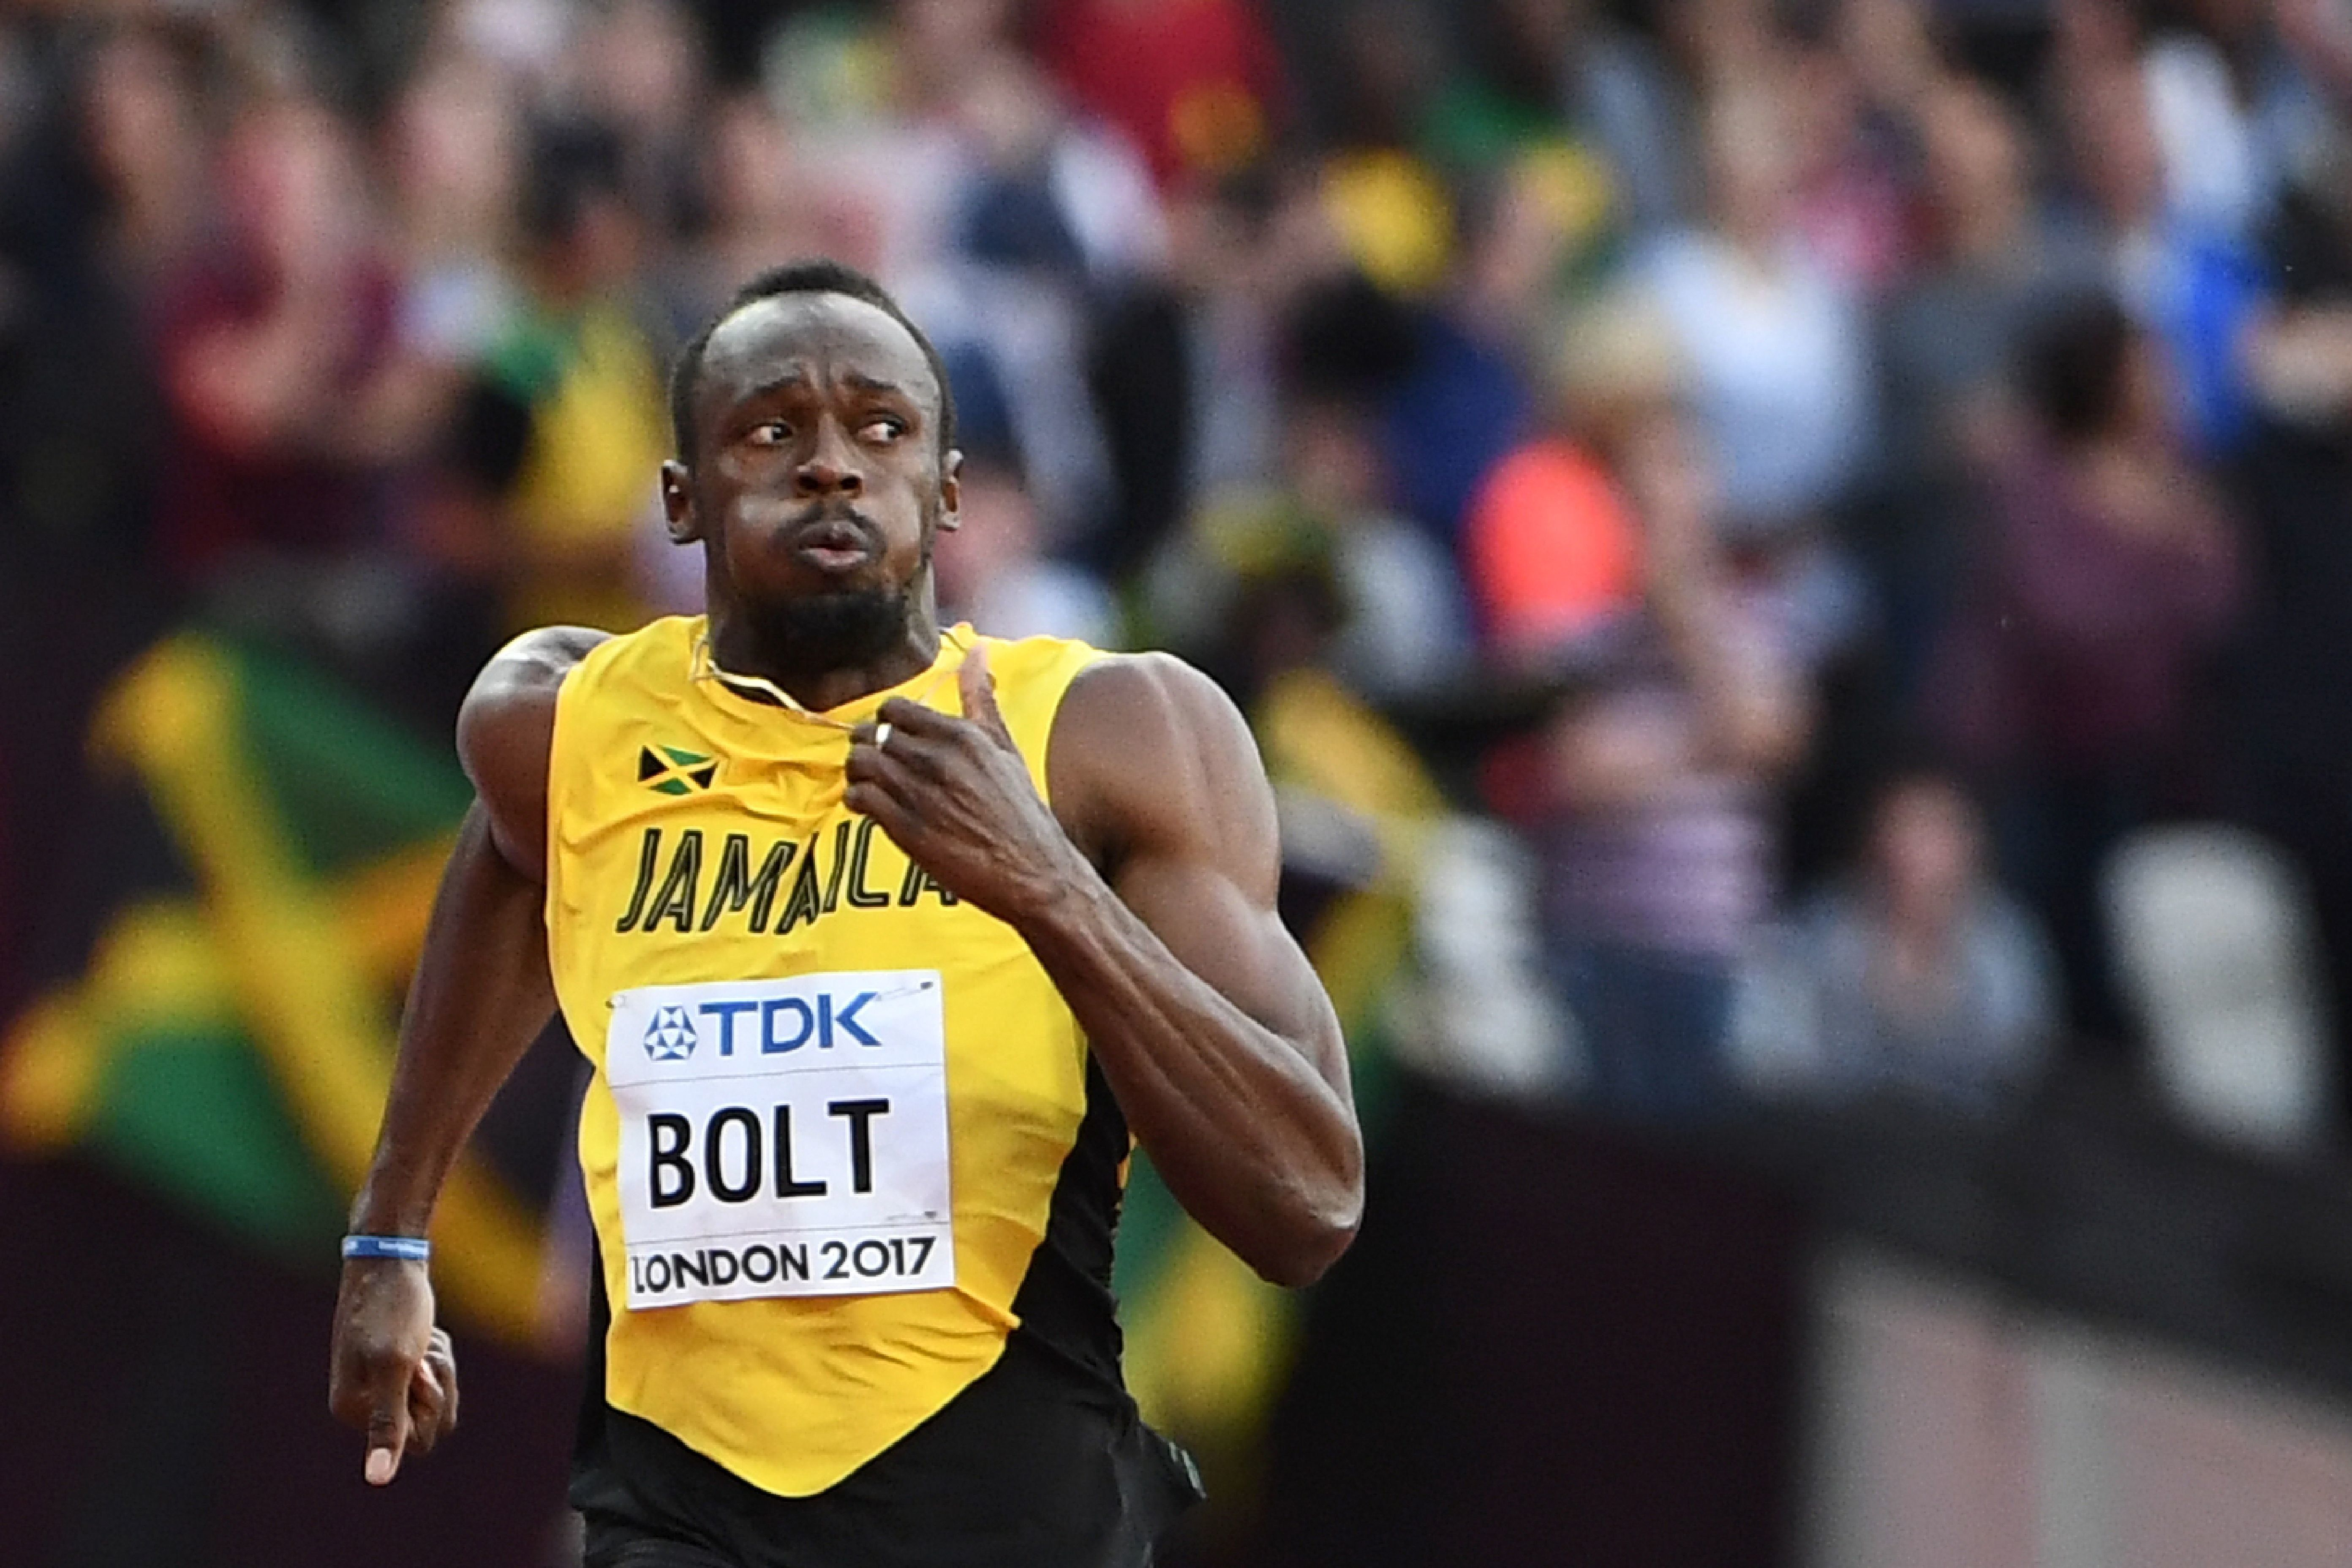 Usain Bolt, Fastest In The World, Loses Final Solo Career